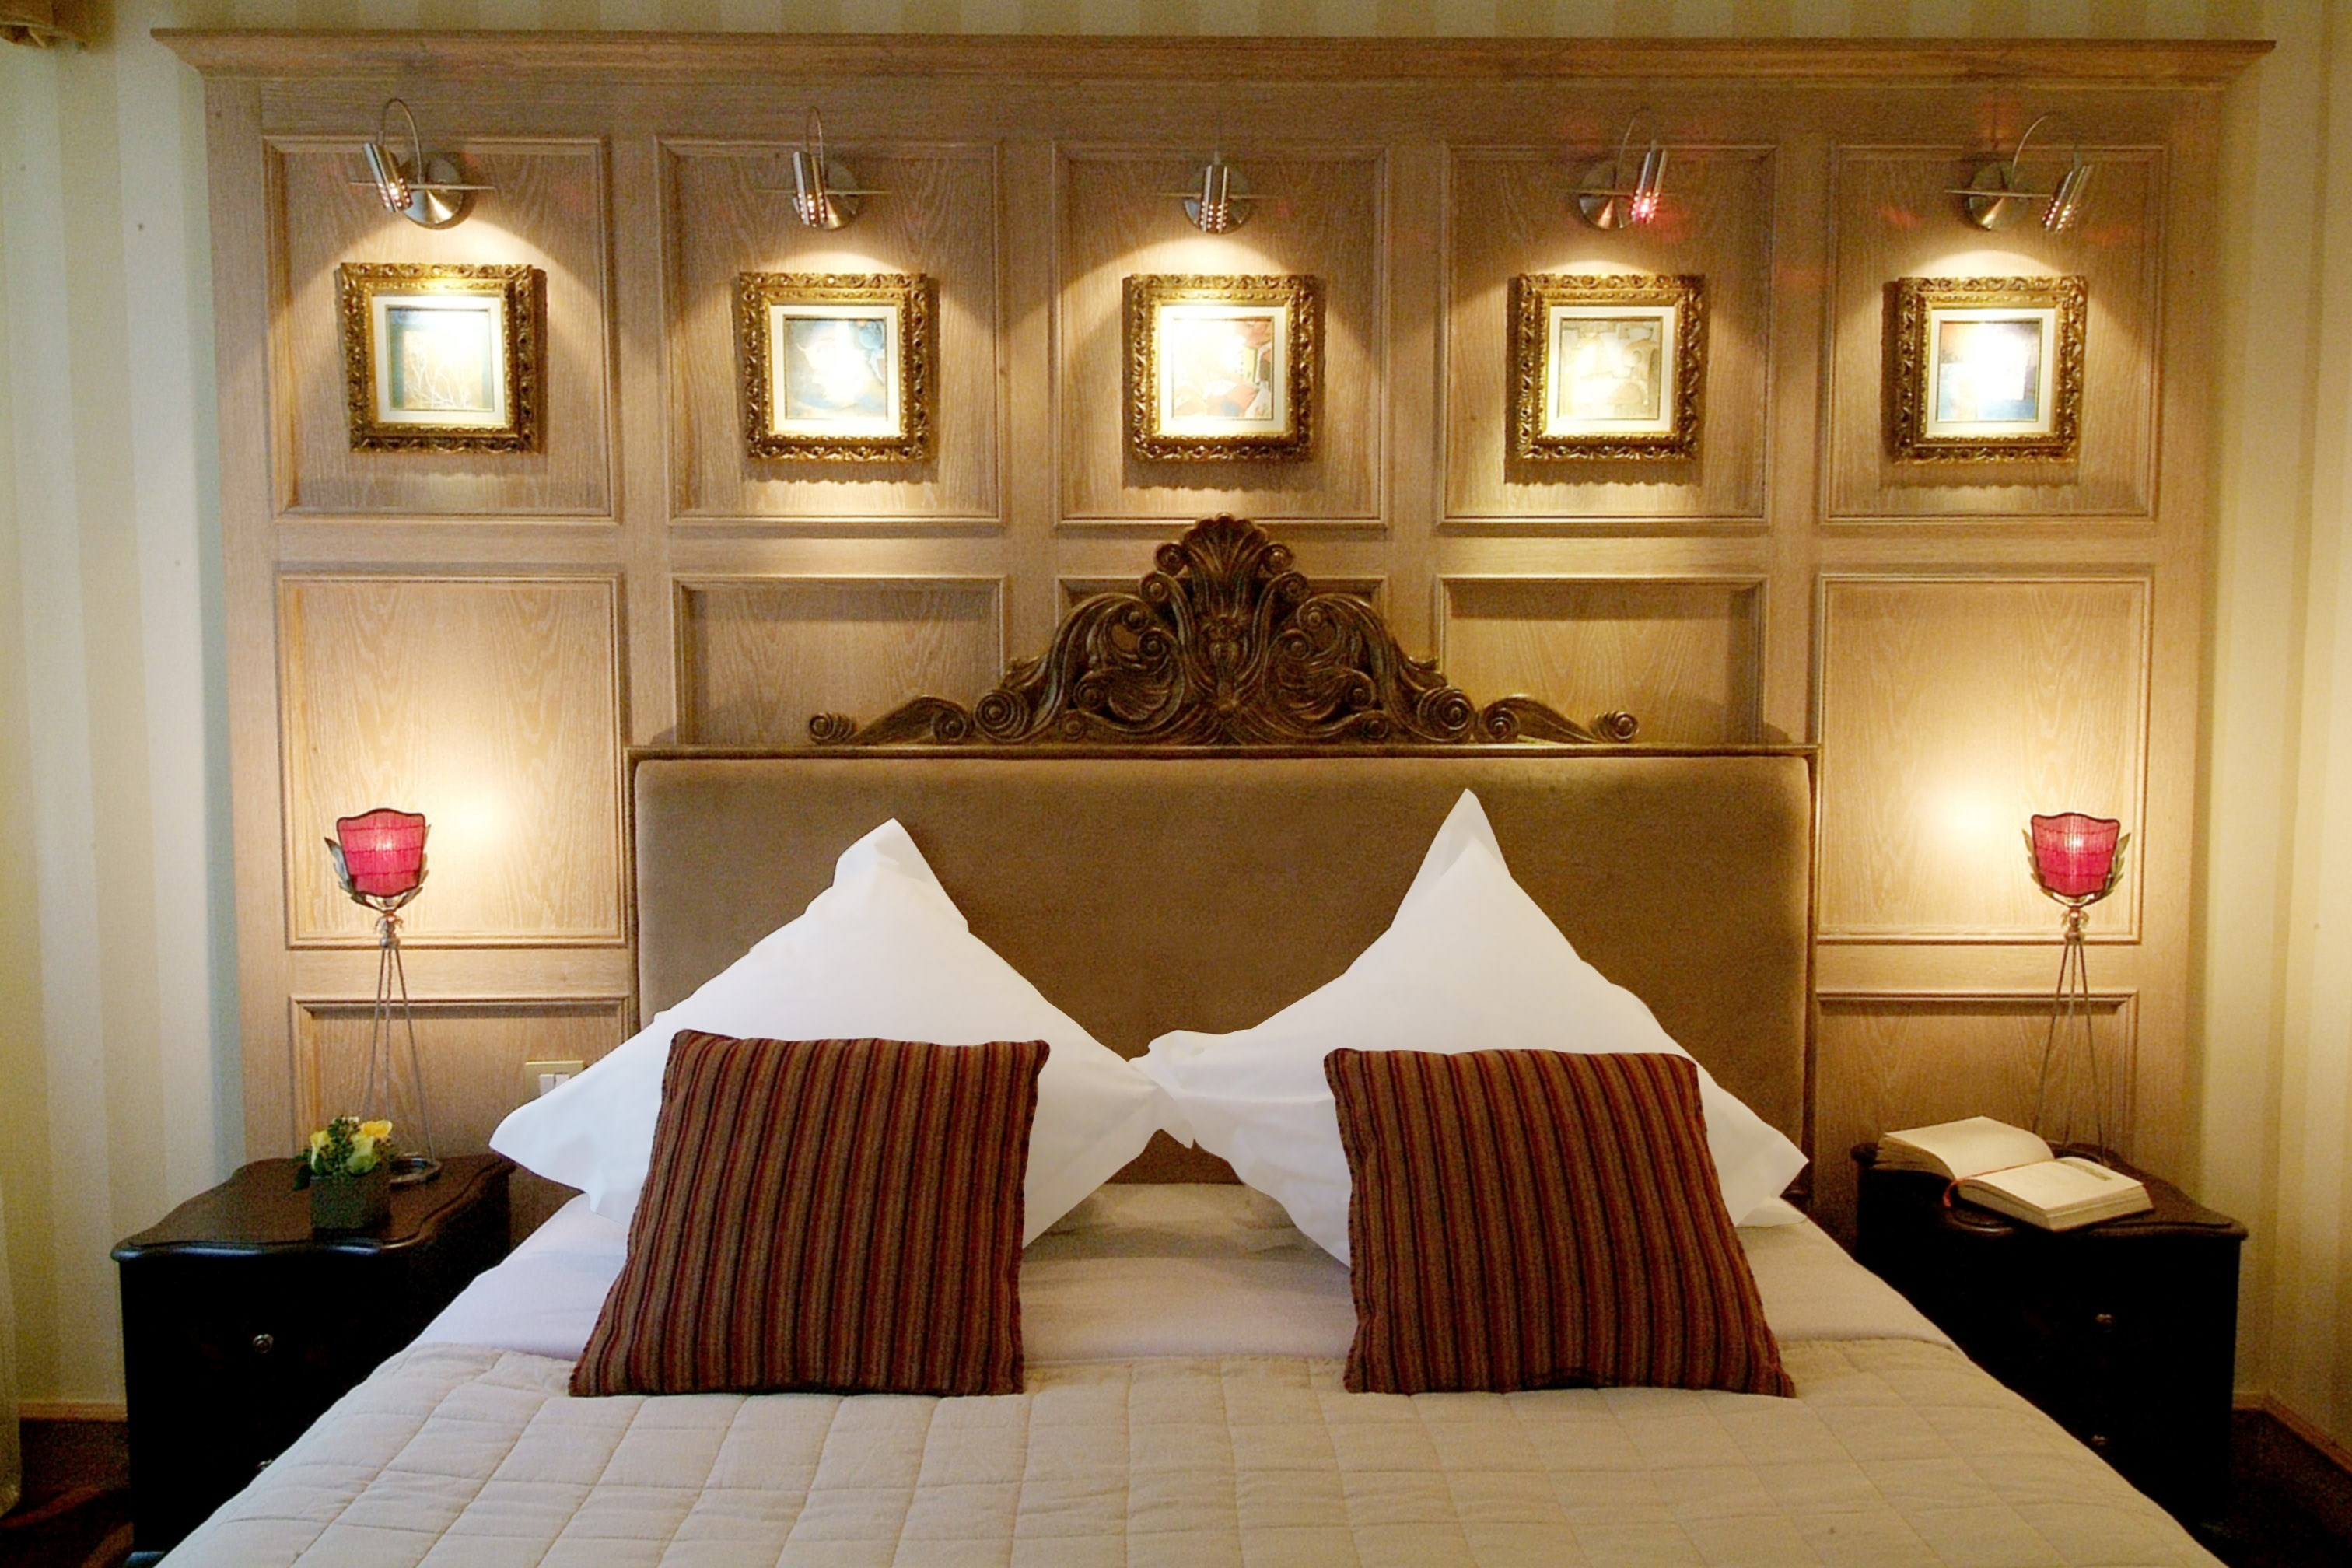 Deluxe Rooms Hotel Amarante Champs Elysees Paris